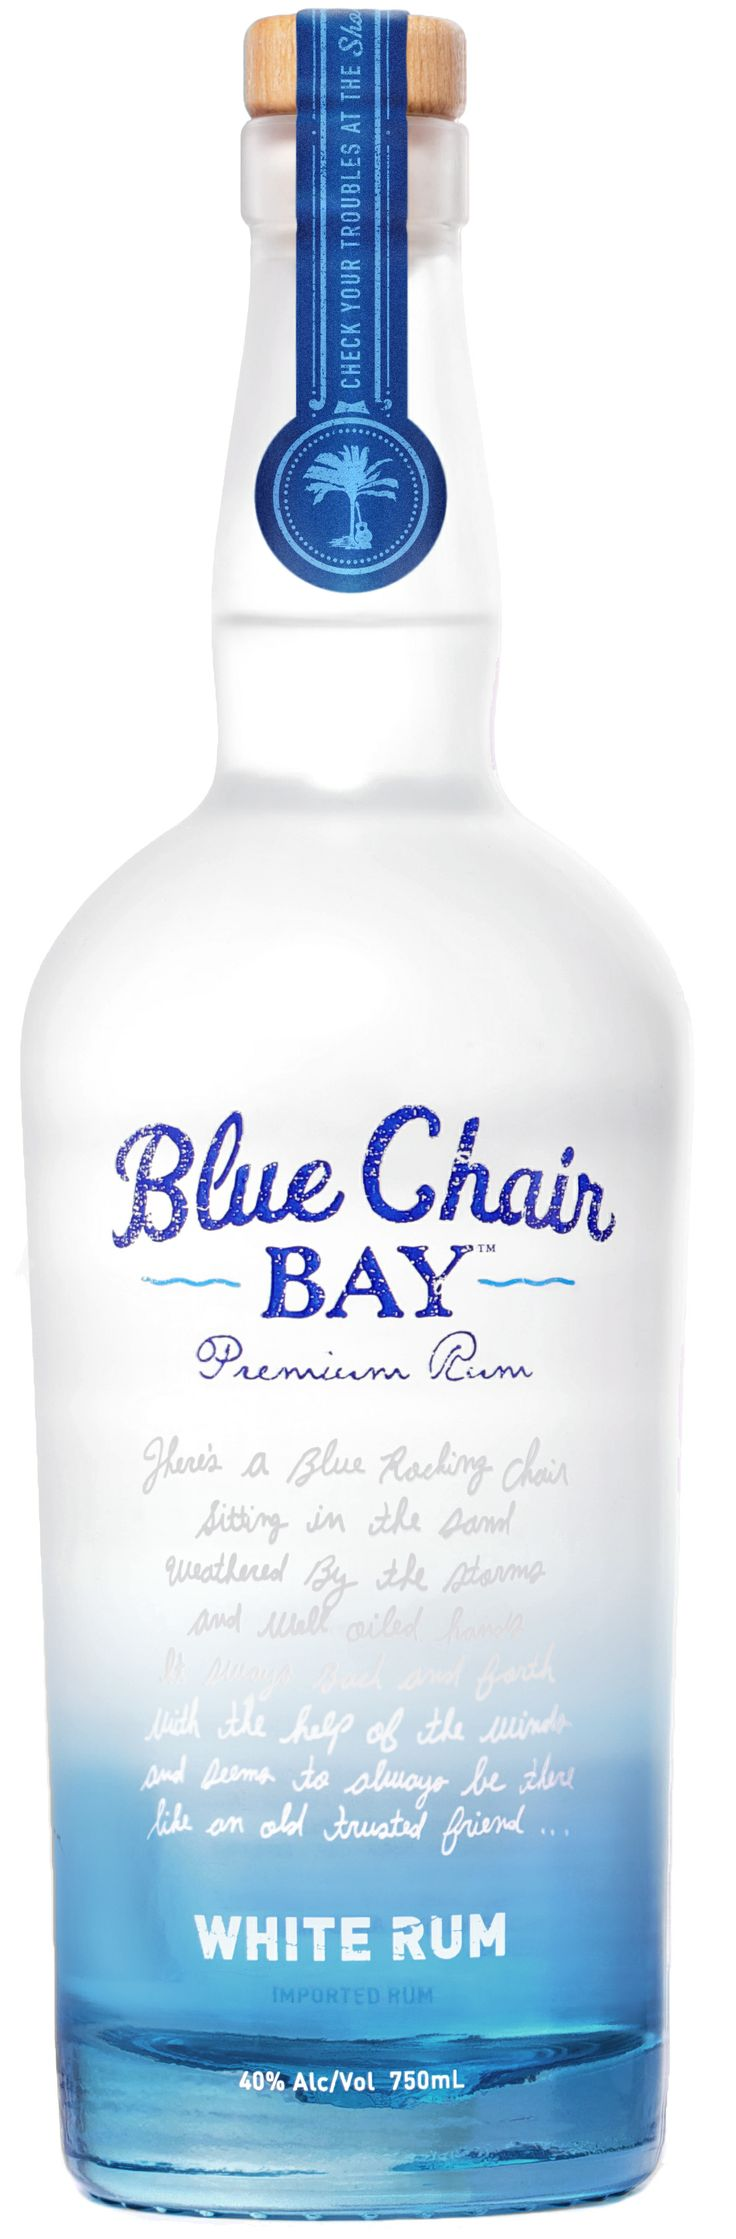 the 187 best blue chair bay images on pinterest bay rum